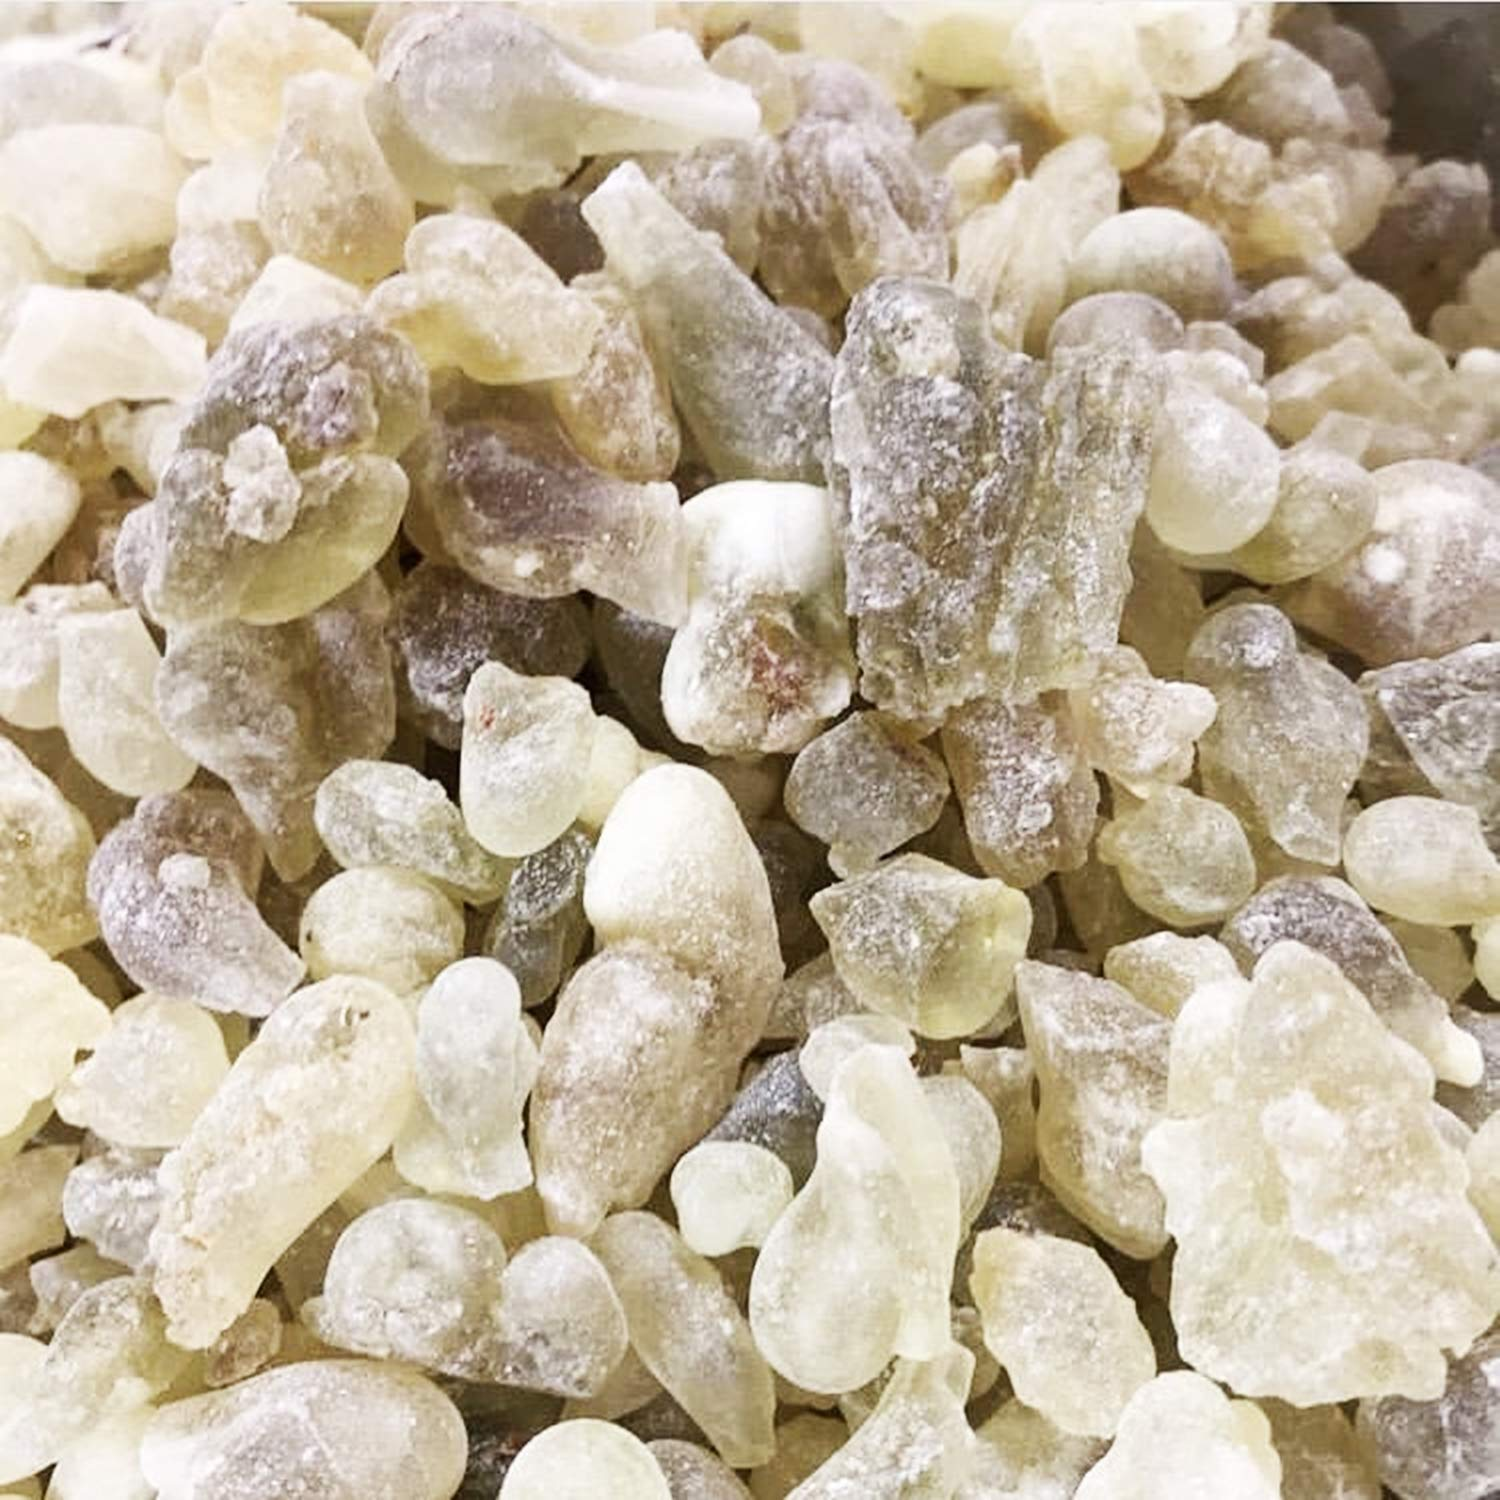 Frankincense Resin Organic Incense Royal Green Hojari Boswellia Sacra from Oman, 1.76 Oz. by C 30 Incense (Image #3)